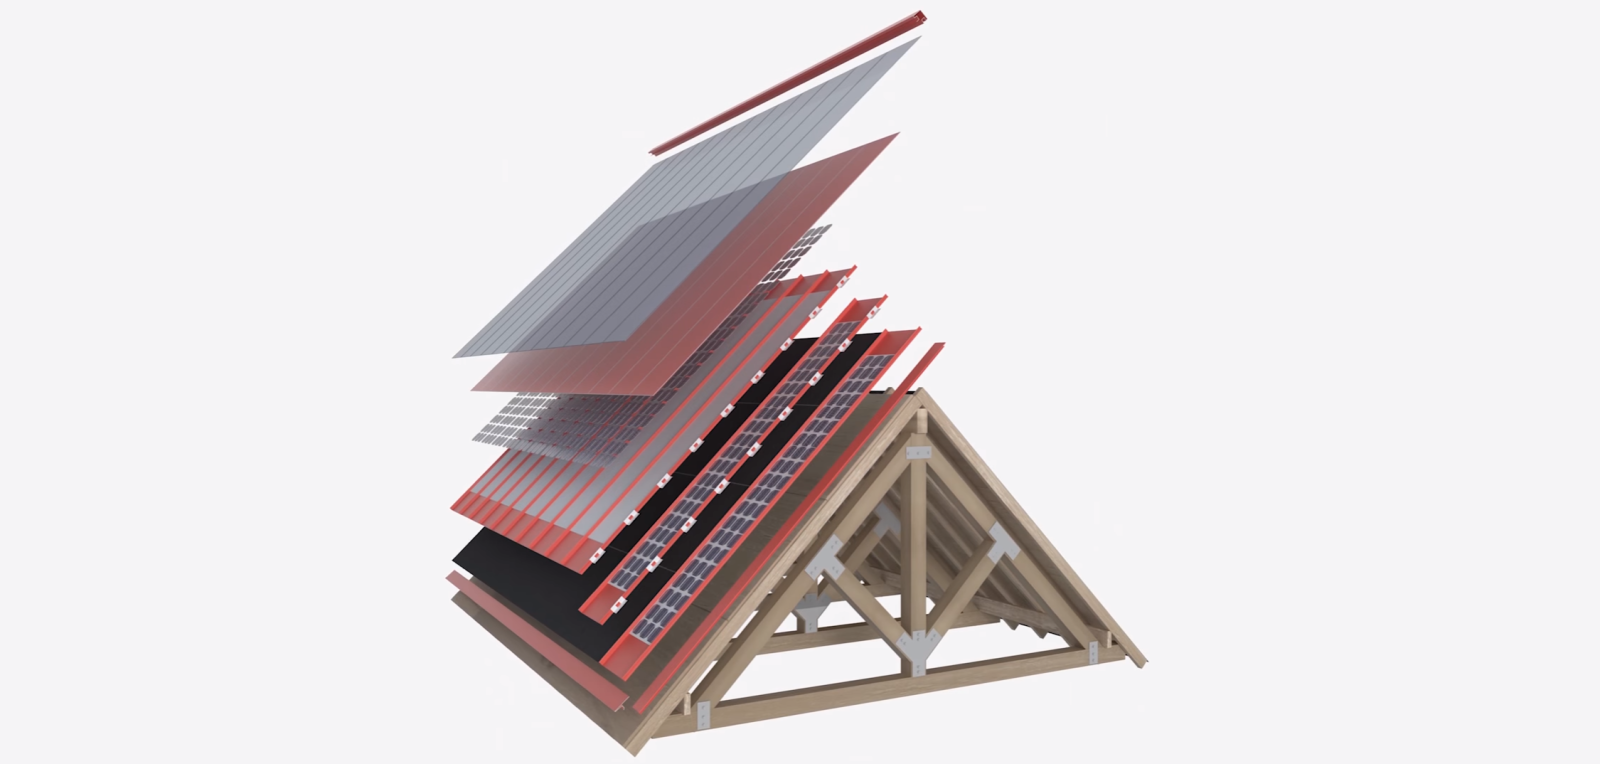 Sensational Can A Startup Compete With Teslas New Solar Roof Impact4All Wiring Cloud Staixaidewilluminateatxorg